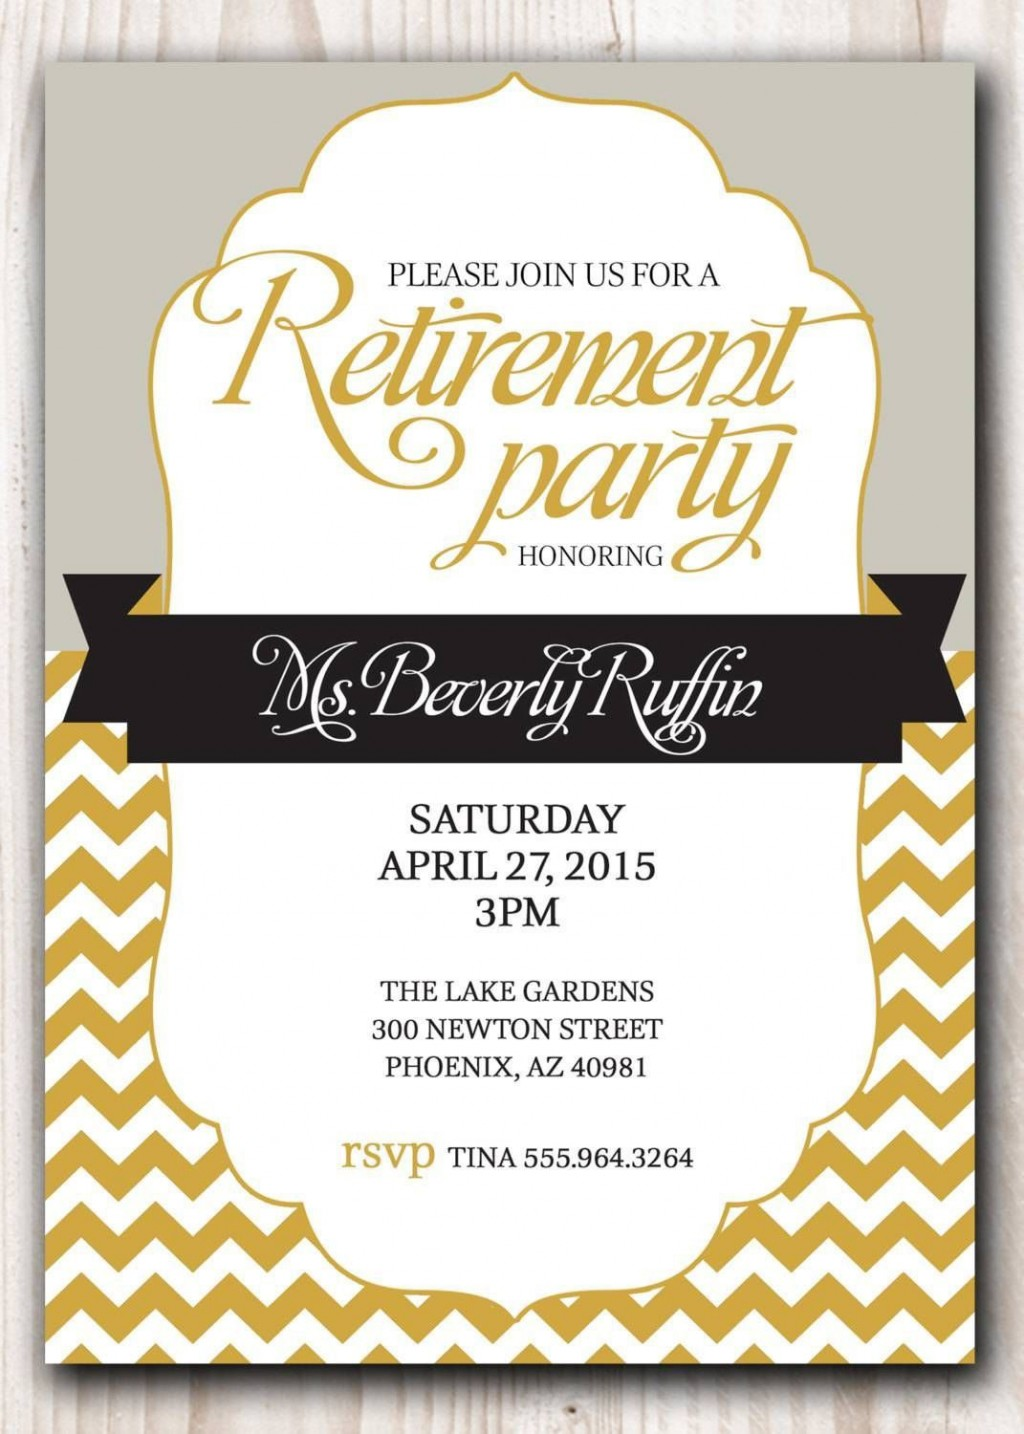 007 Awesome Retirement Invitation Template Free Highest Quality  Party Word DownloadLarge